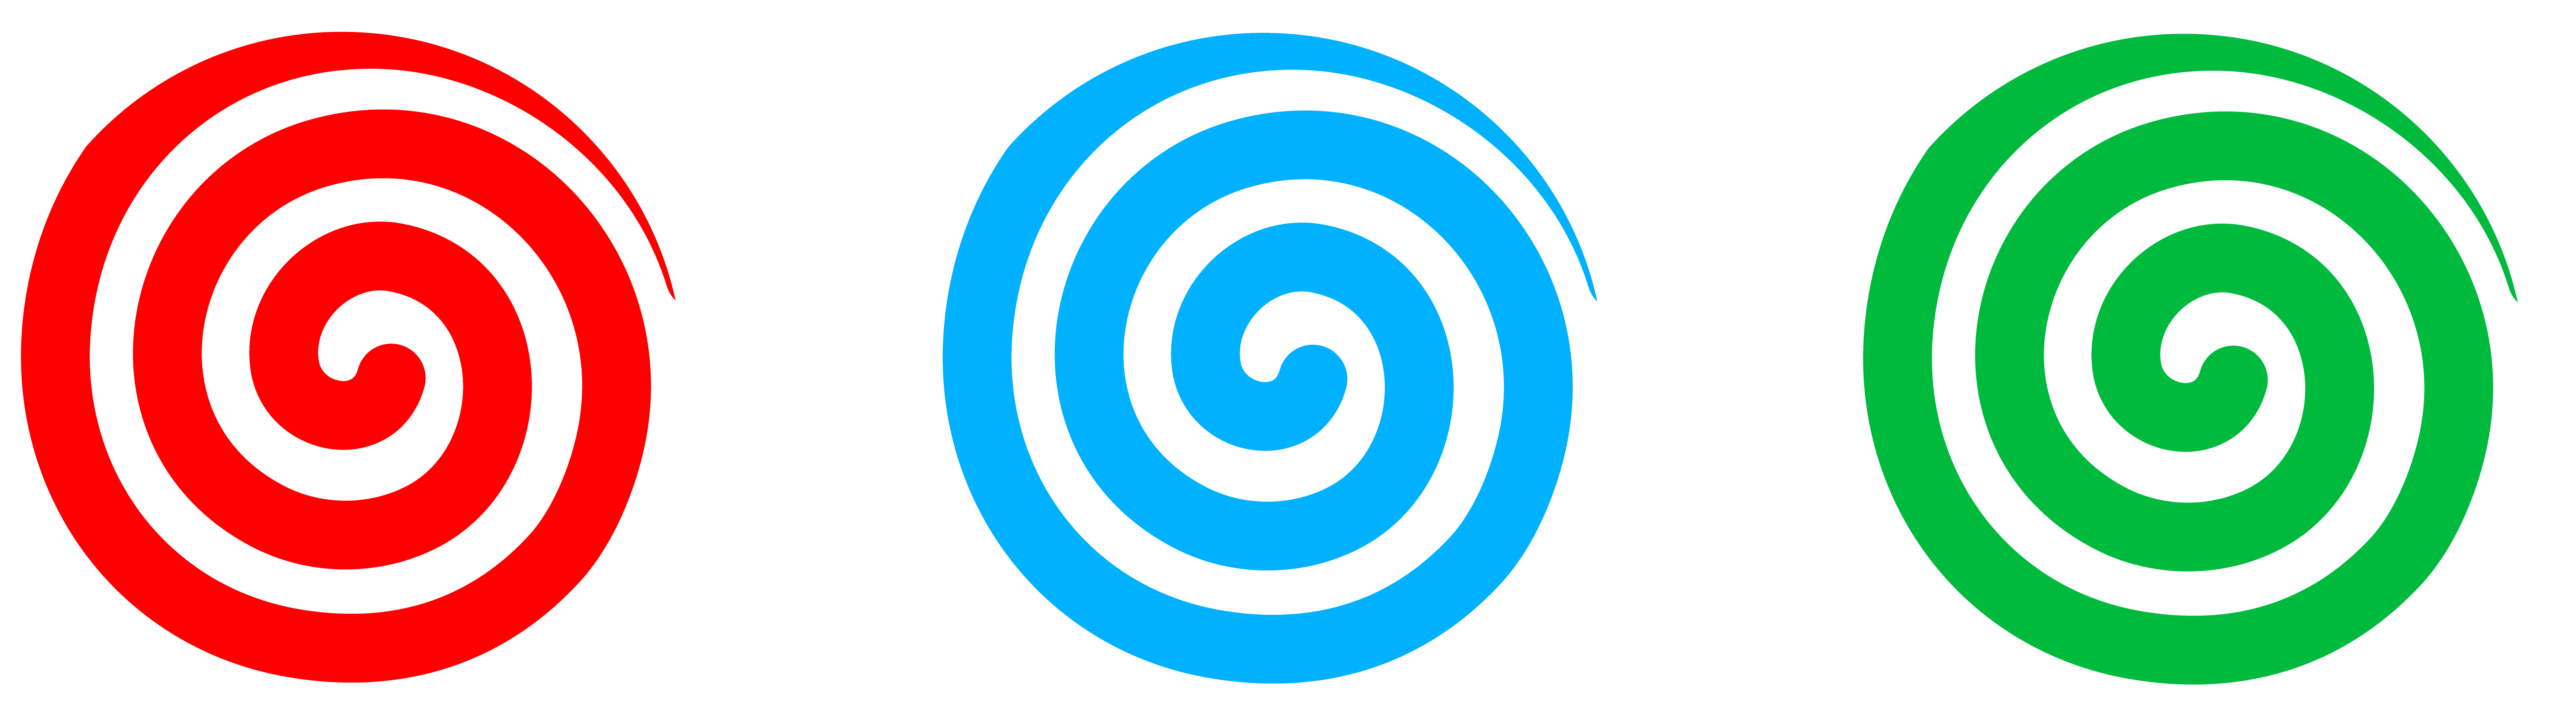 Spiral clipart swirl candy Art Candies Free Spiral With